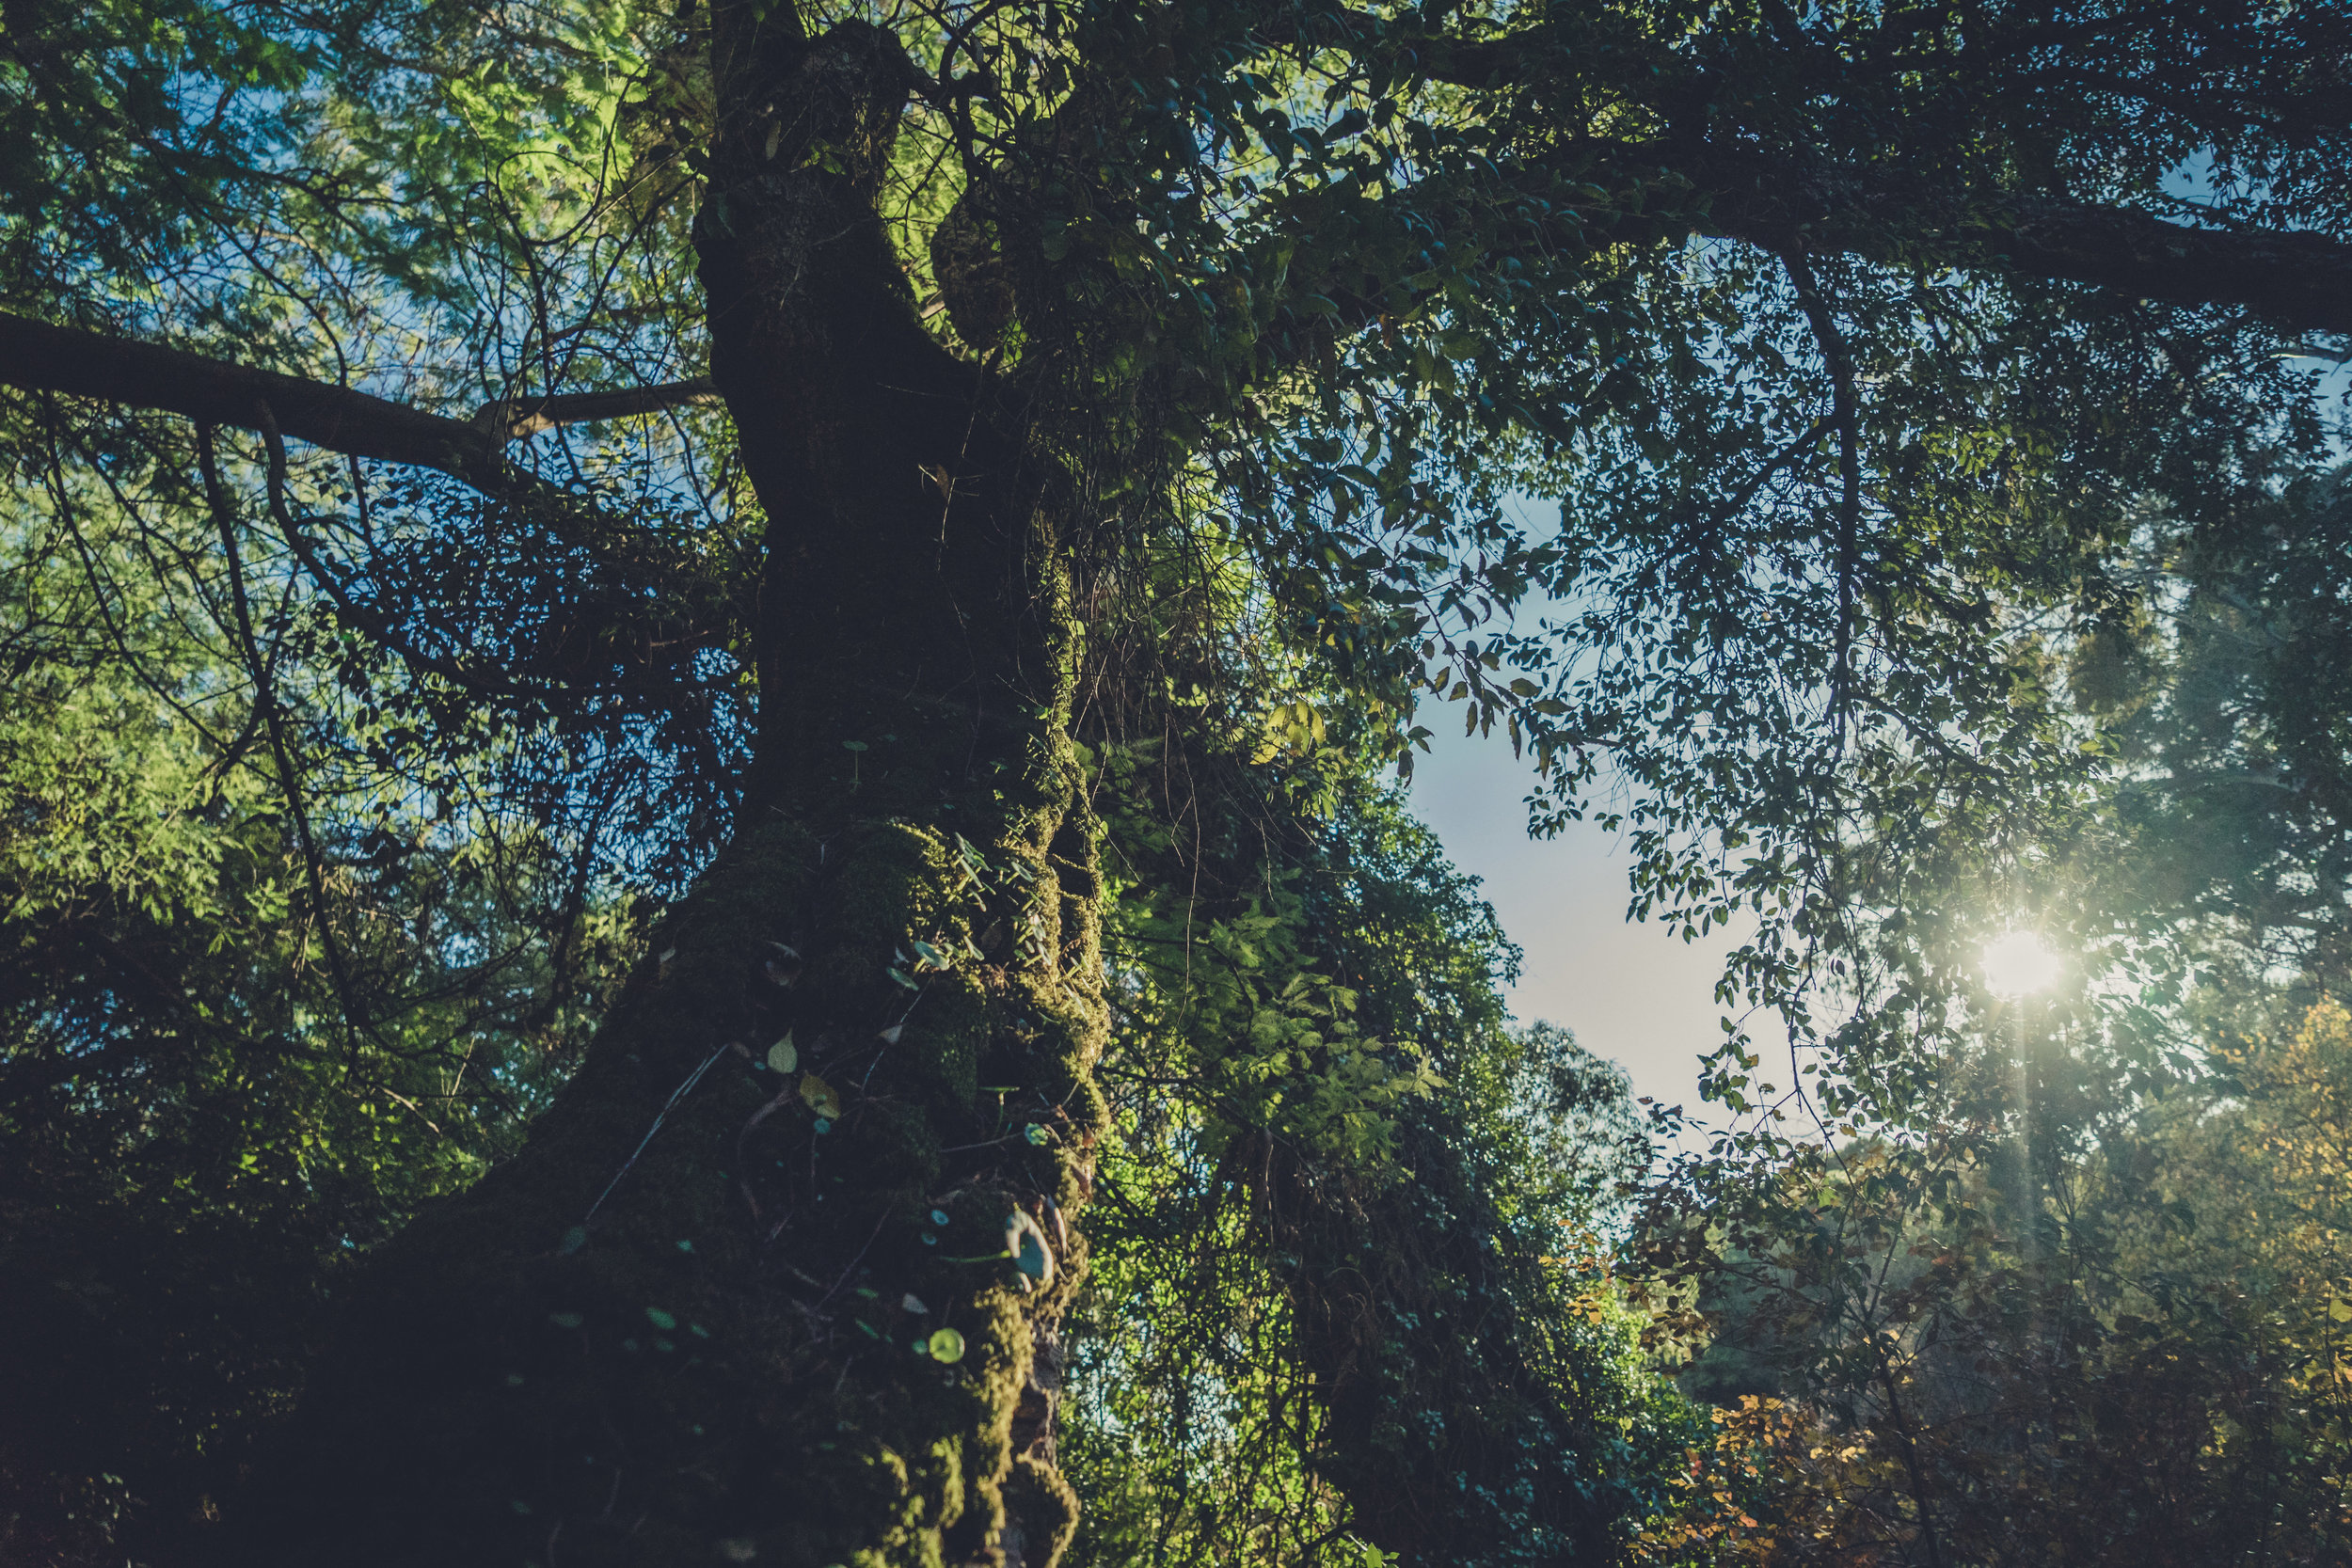 caldas de monchique portugal. walking through the forest. walking through the grounds of the spa. lovely setting. sunlight shining through tree. cork tree..jpg